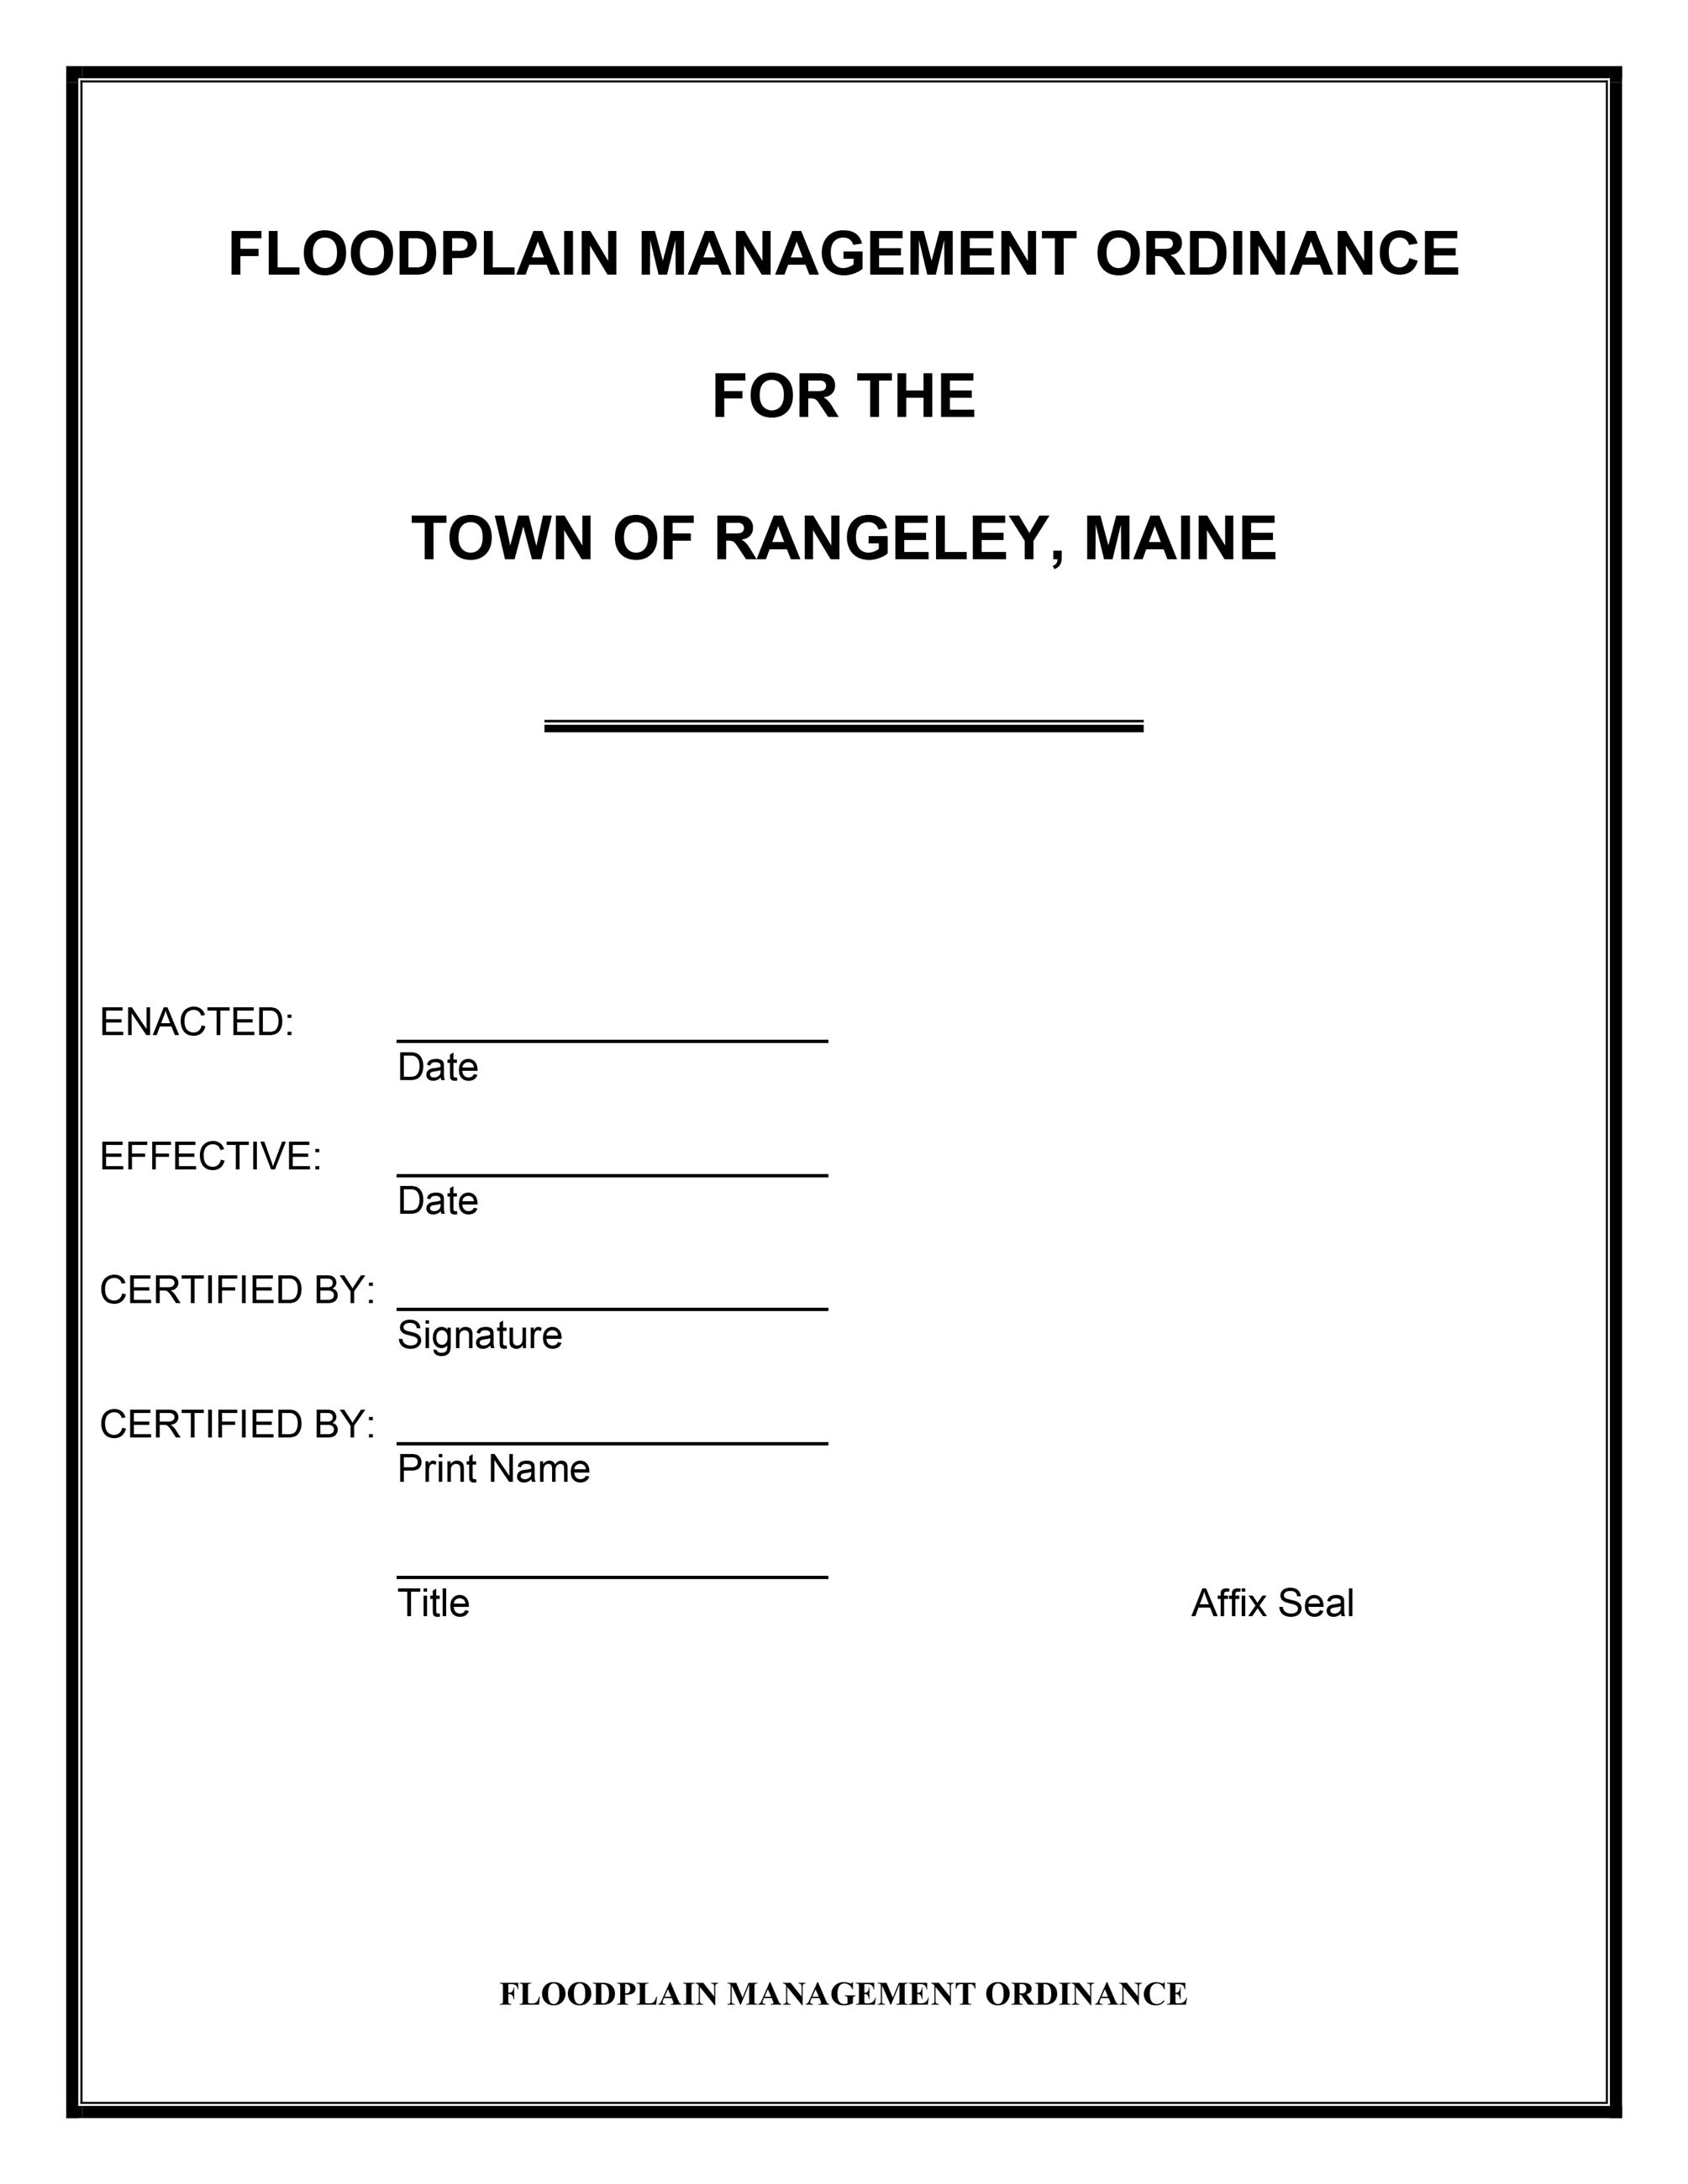 Floodplain Management Ordinance-1